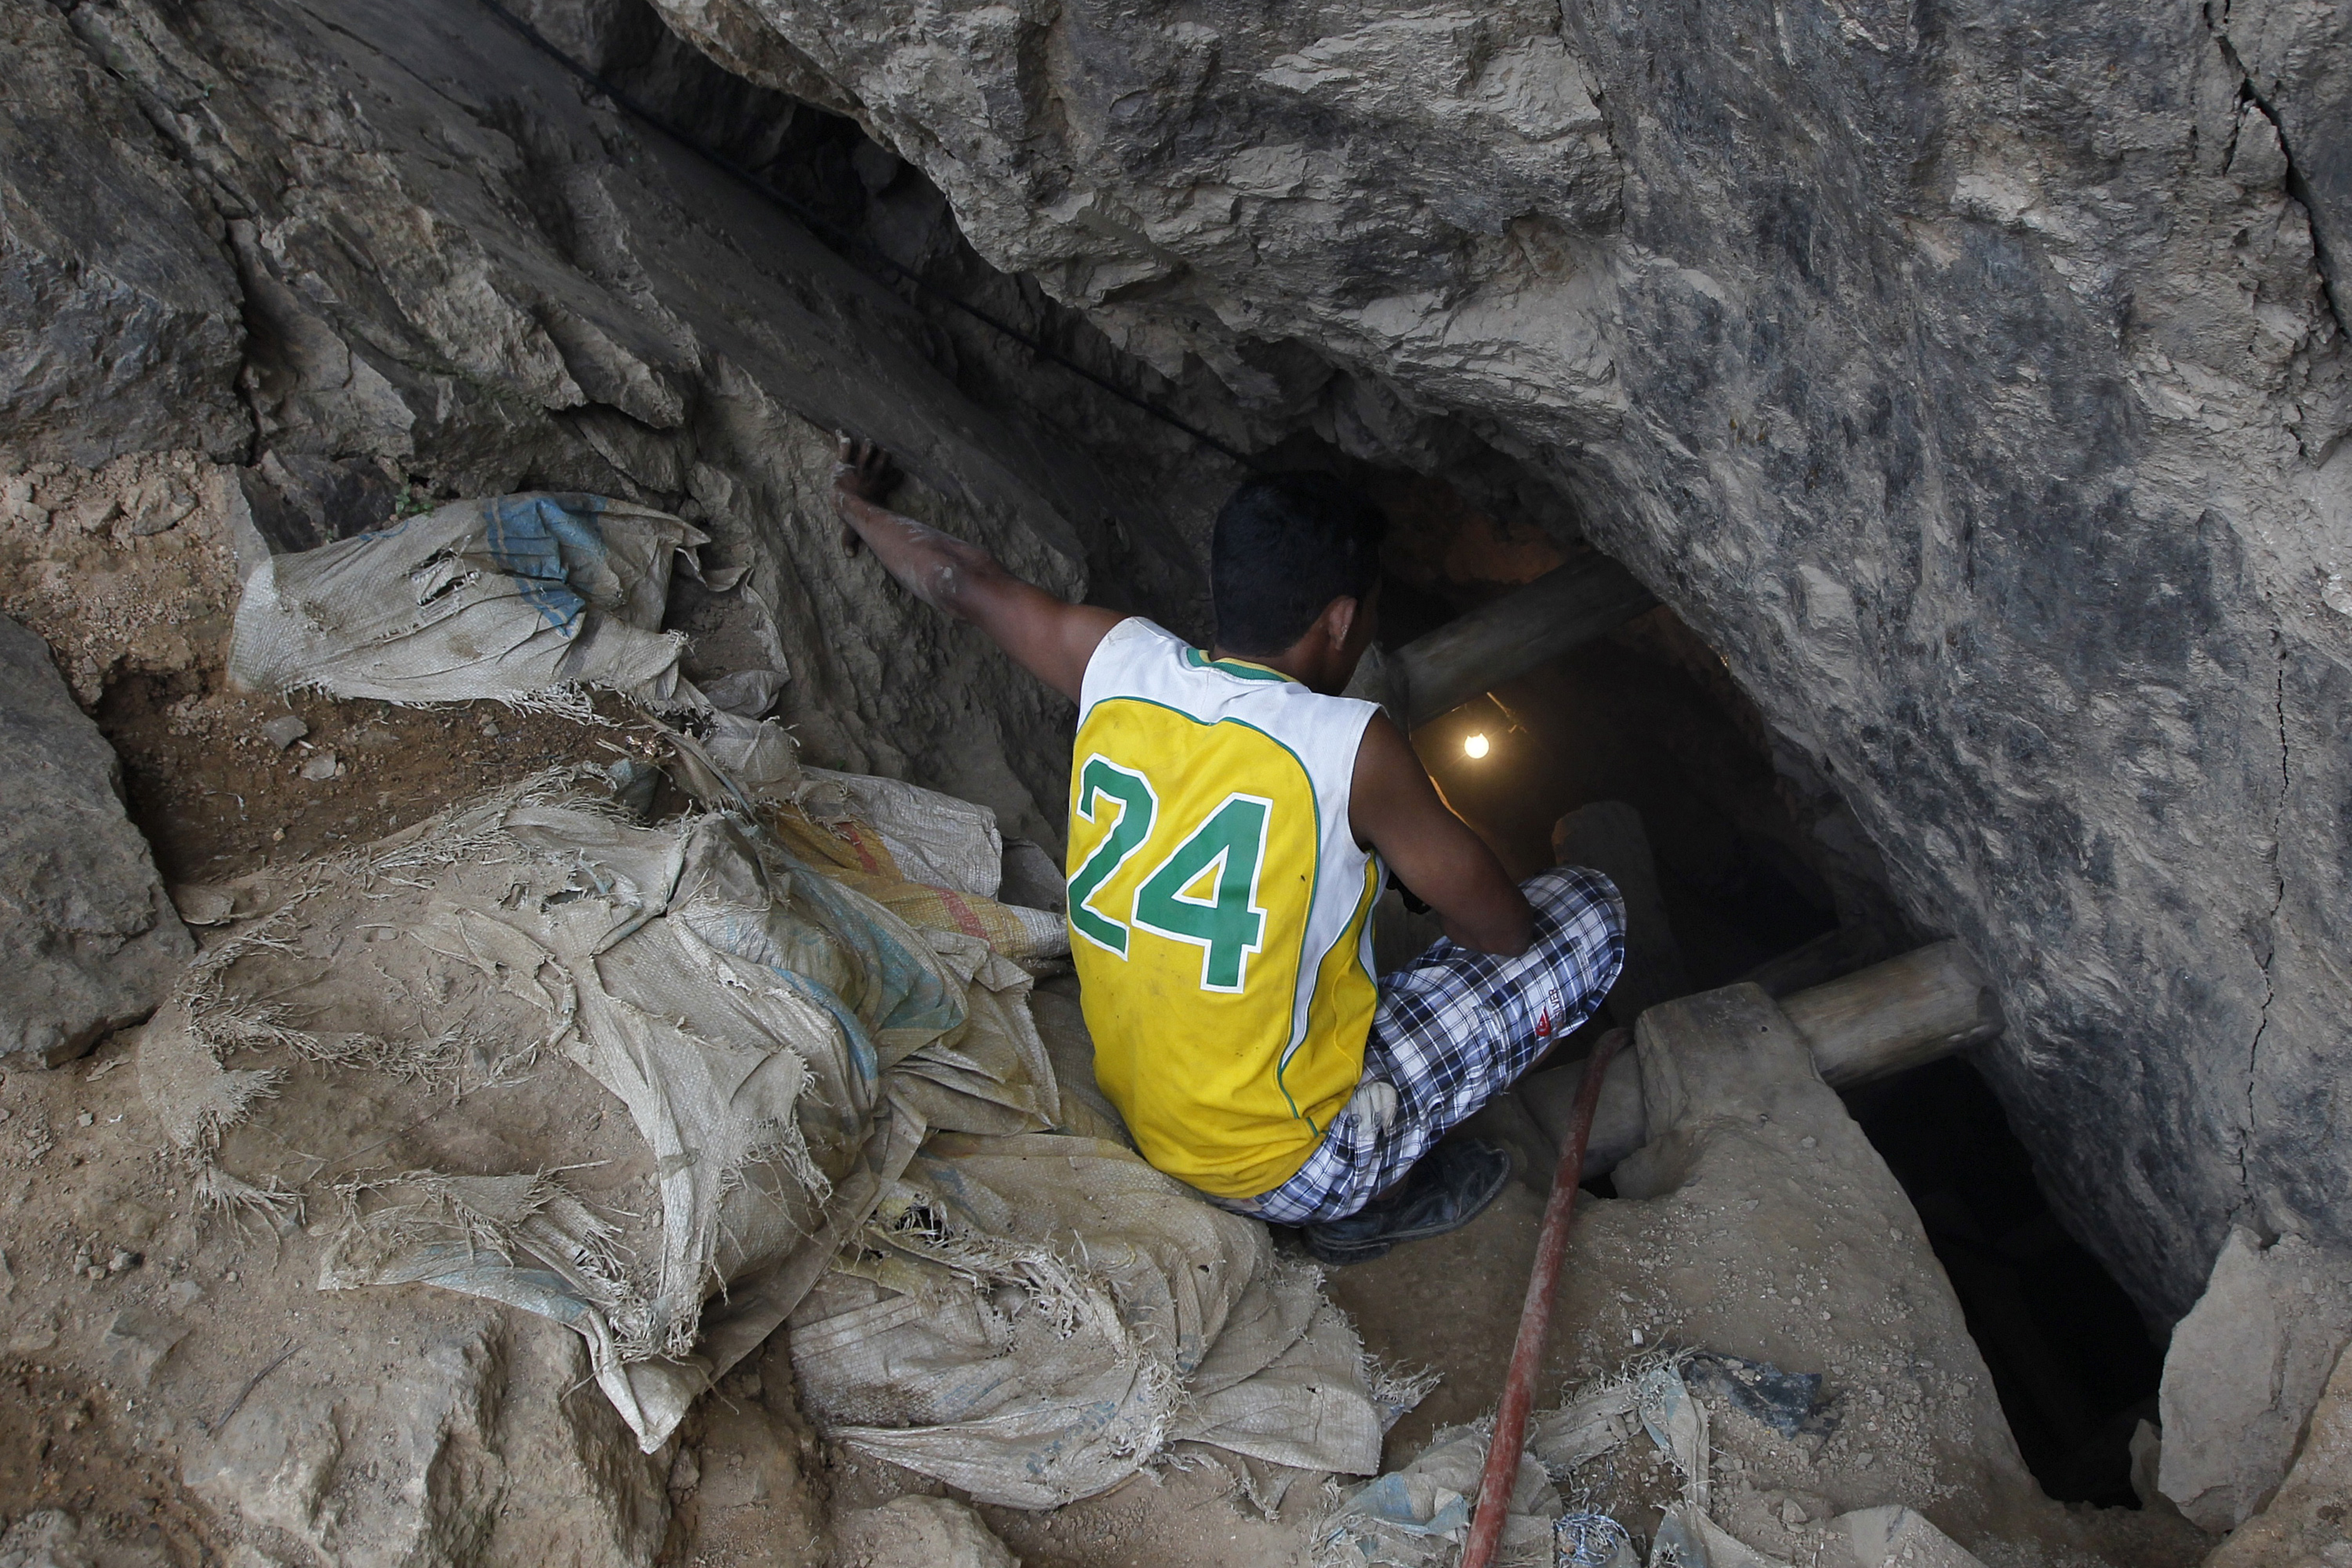 Miners trapped in illegal Honduran gold mine